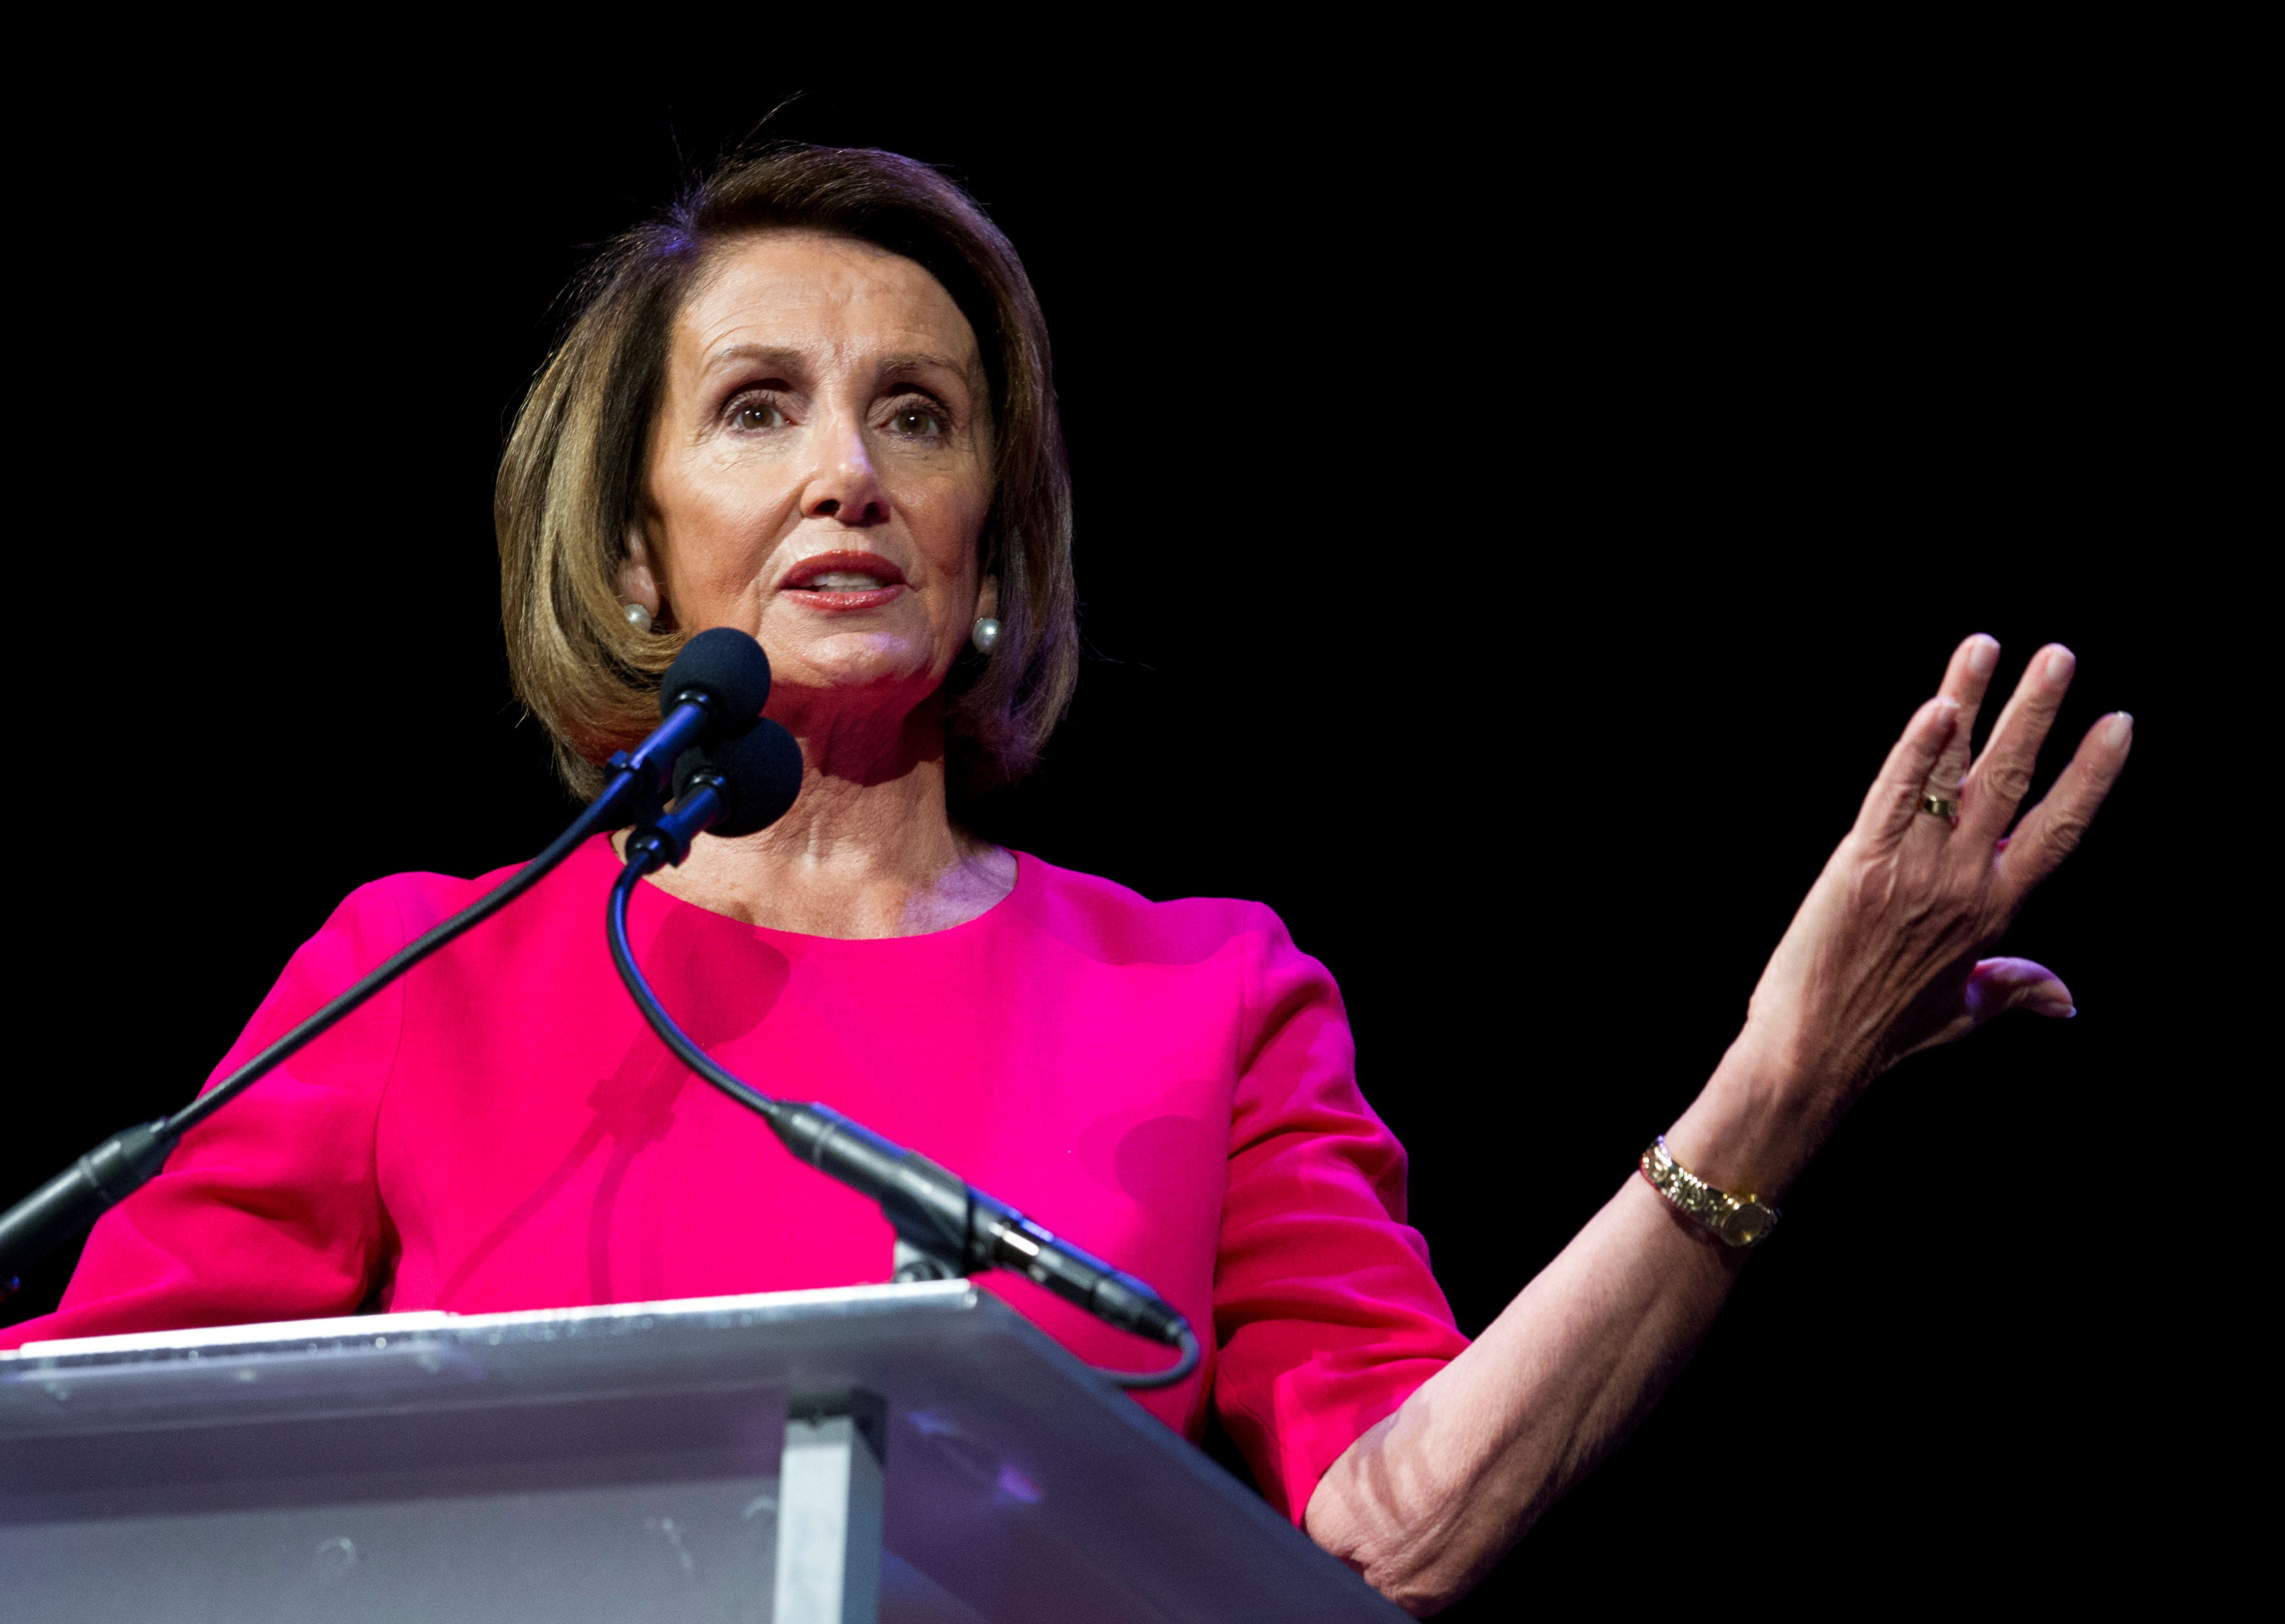 House Minority Leader Nancy Pelosi, D-Calif., speaks during Congressional Black Caucus member swearing-in ceremony of the 116th Congress at The Warner Theatre in Washington, Thursday, Jan. 3, 2019. (AP Photo/Jose Luis Magana)